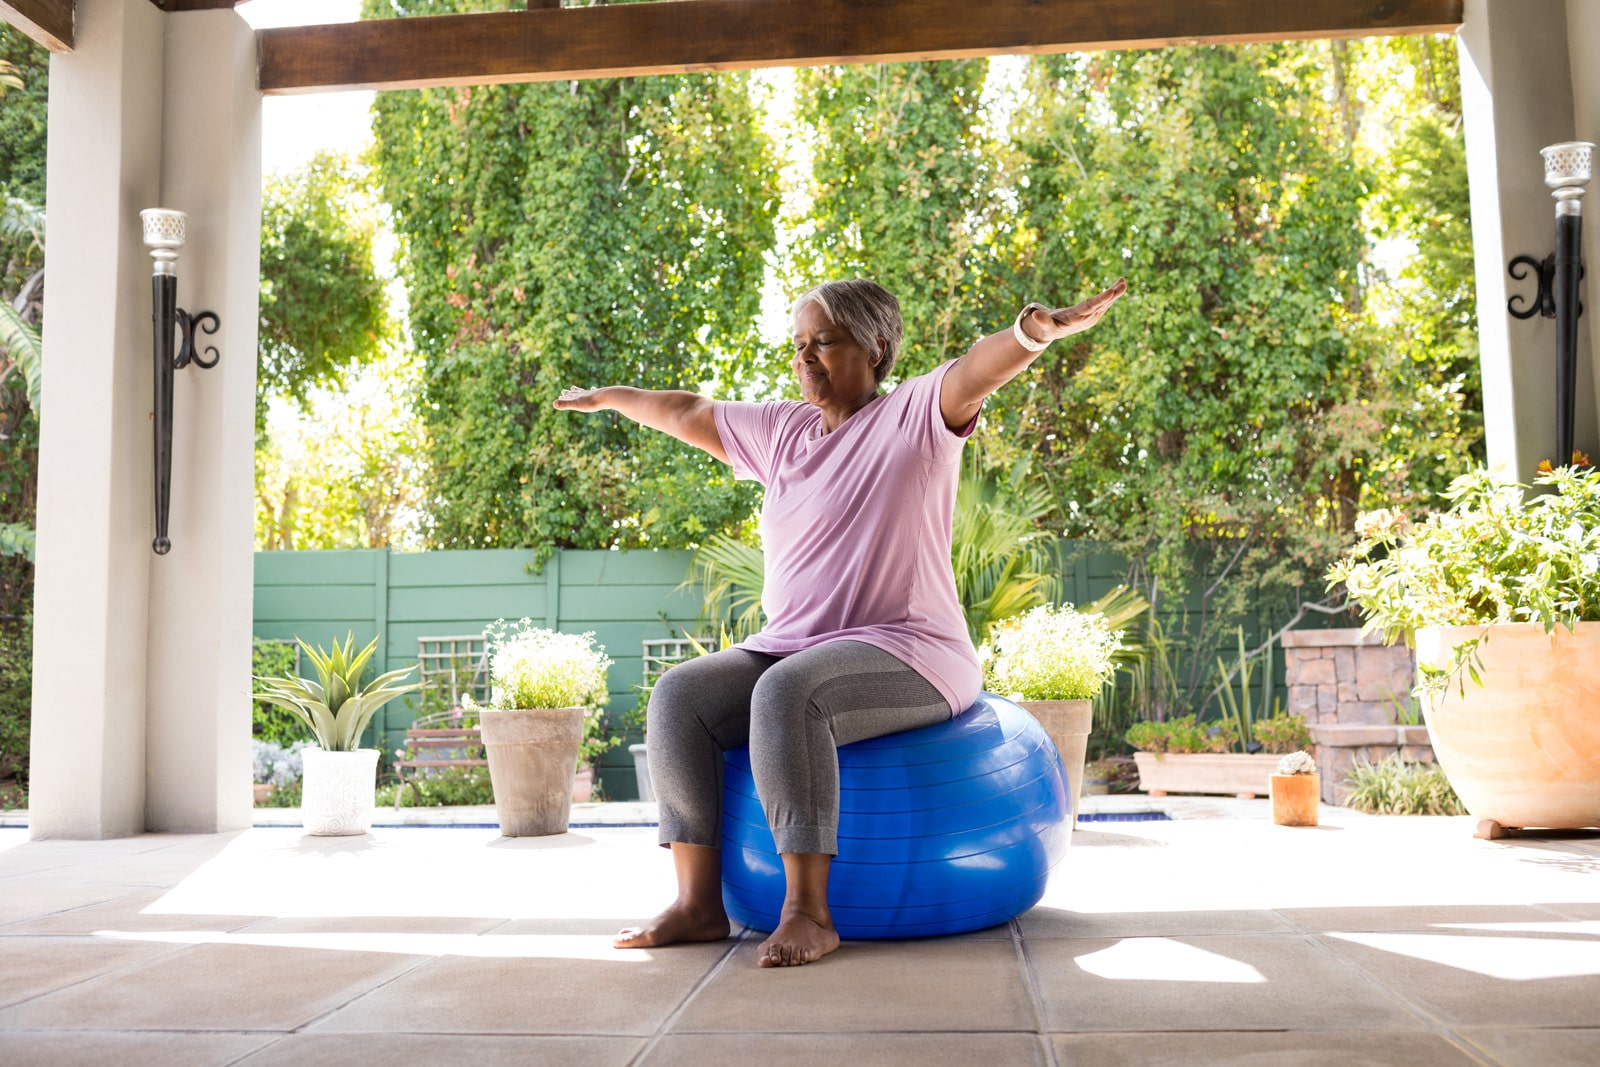 woman exercising in covered garden area